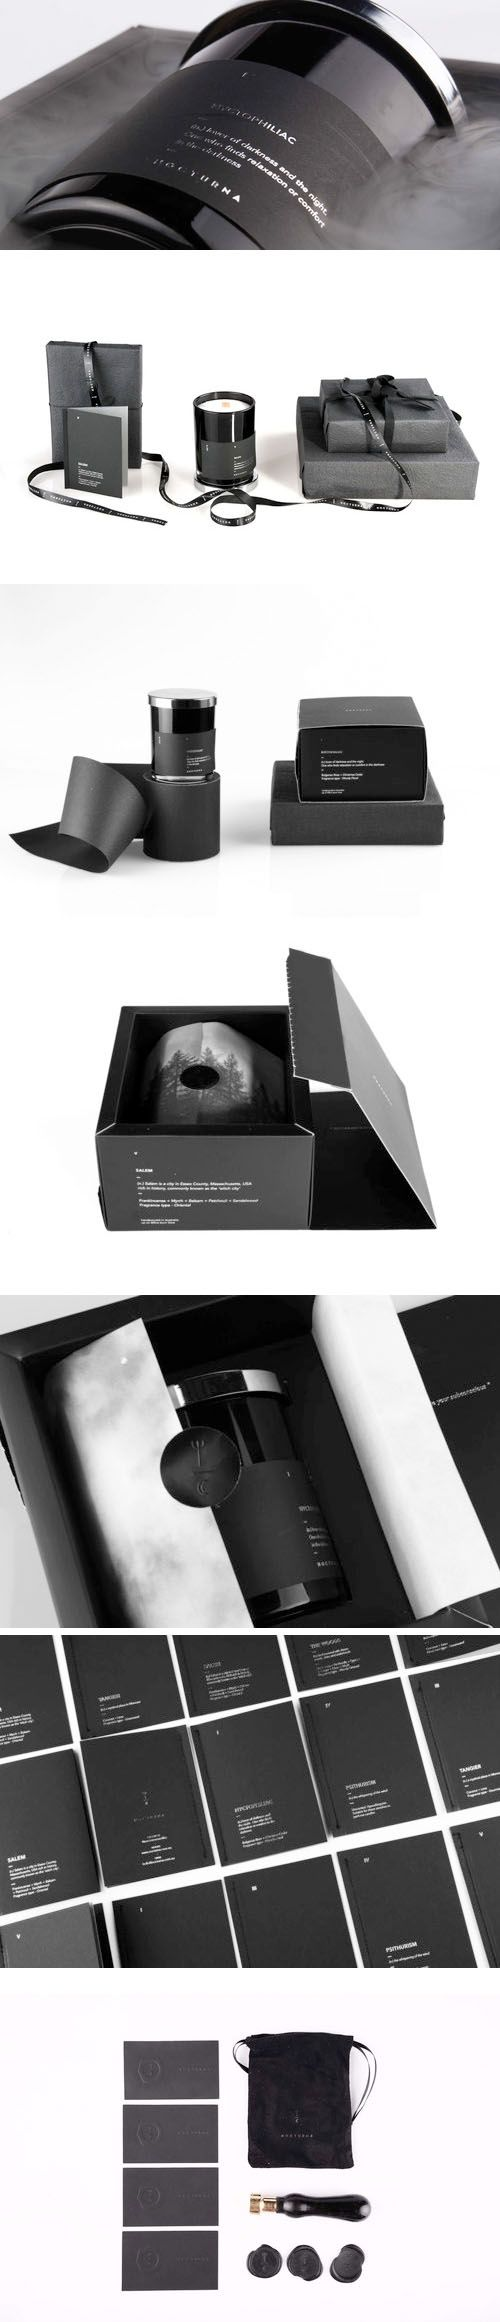 Nocturna Candle Packaging Design